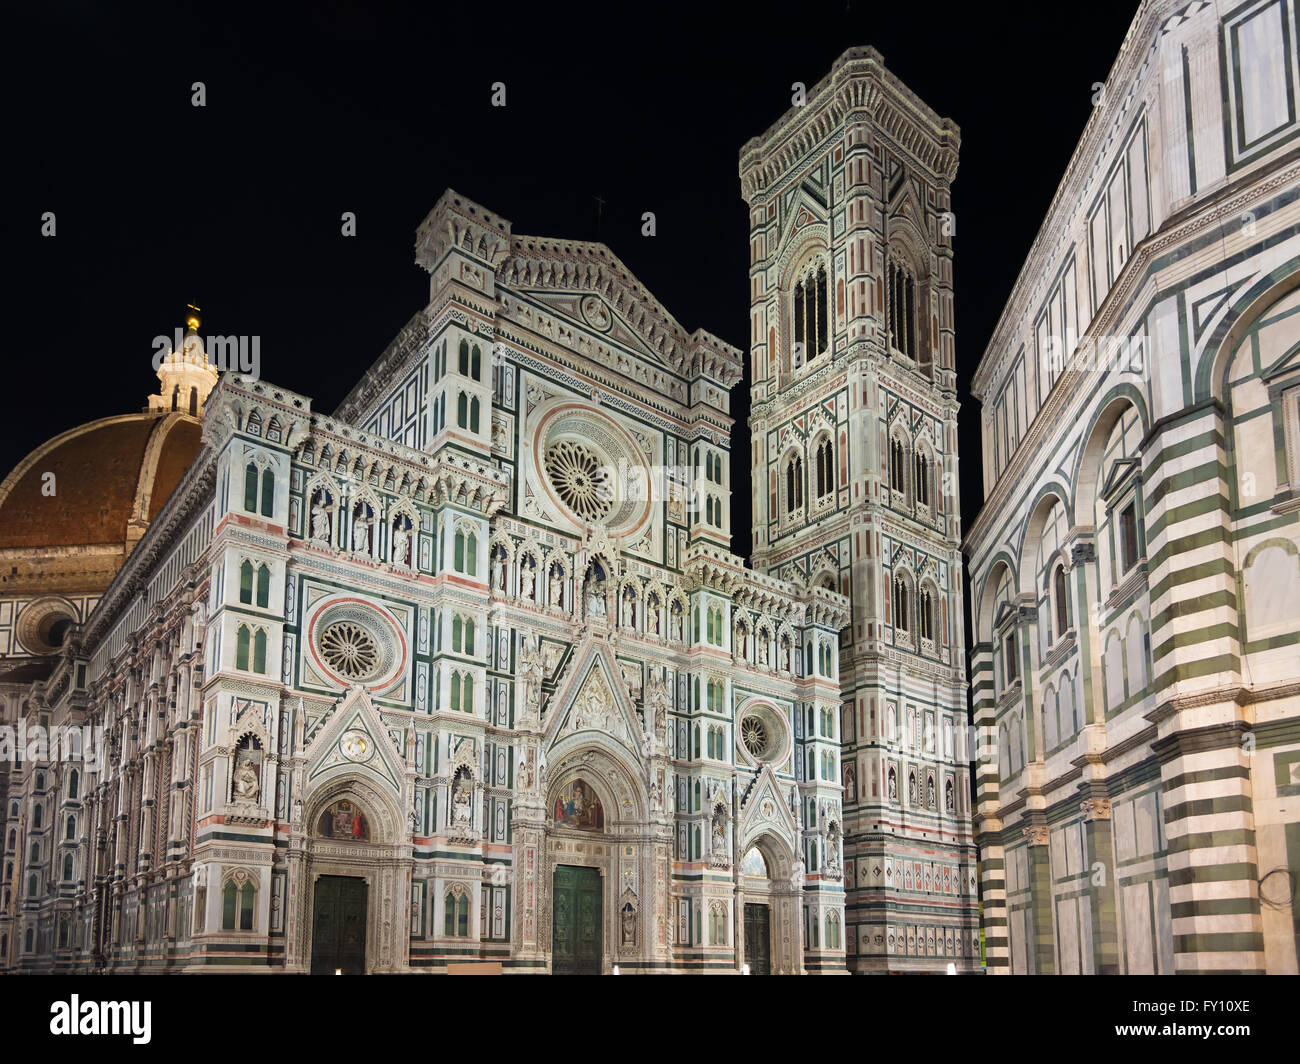 Florence Cathedral and bell tower at night. Tuscany, Italy - Stock Image